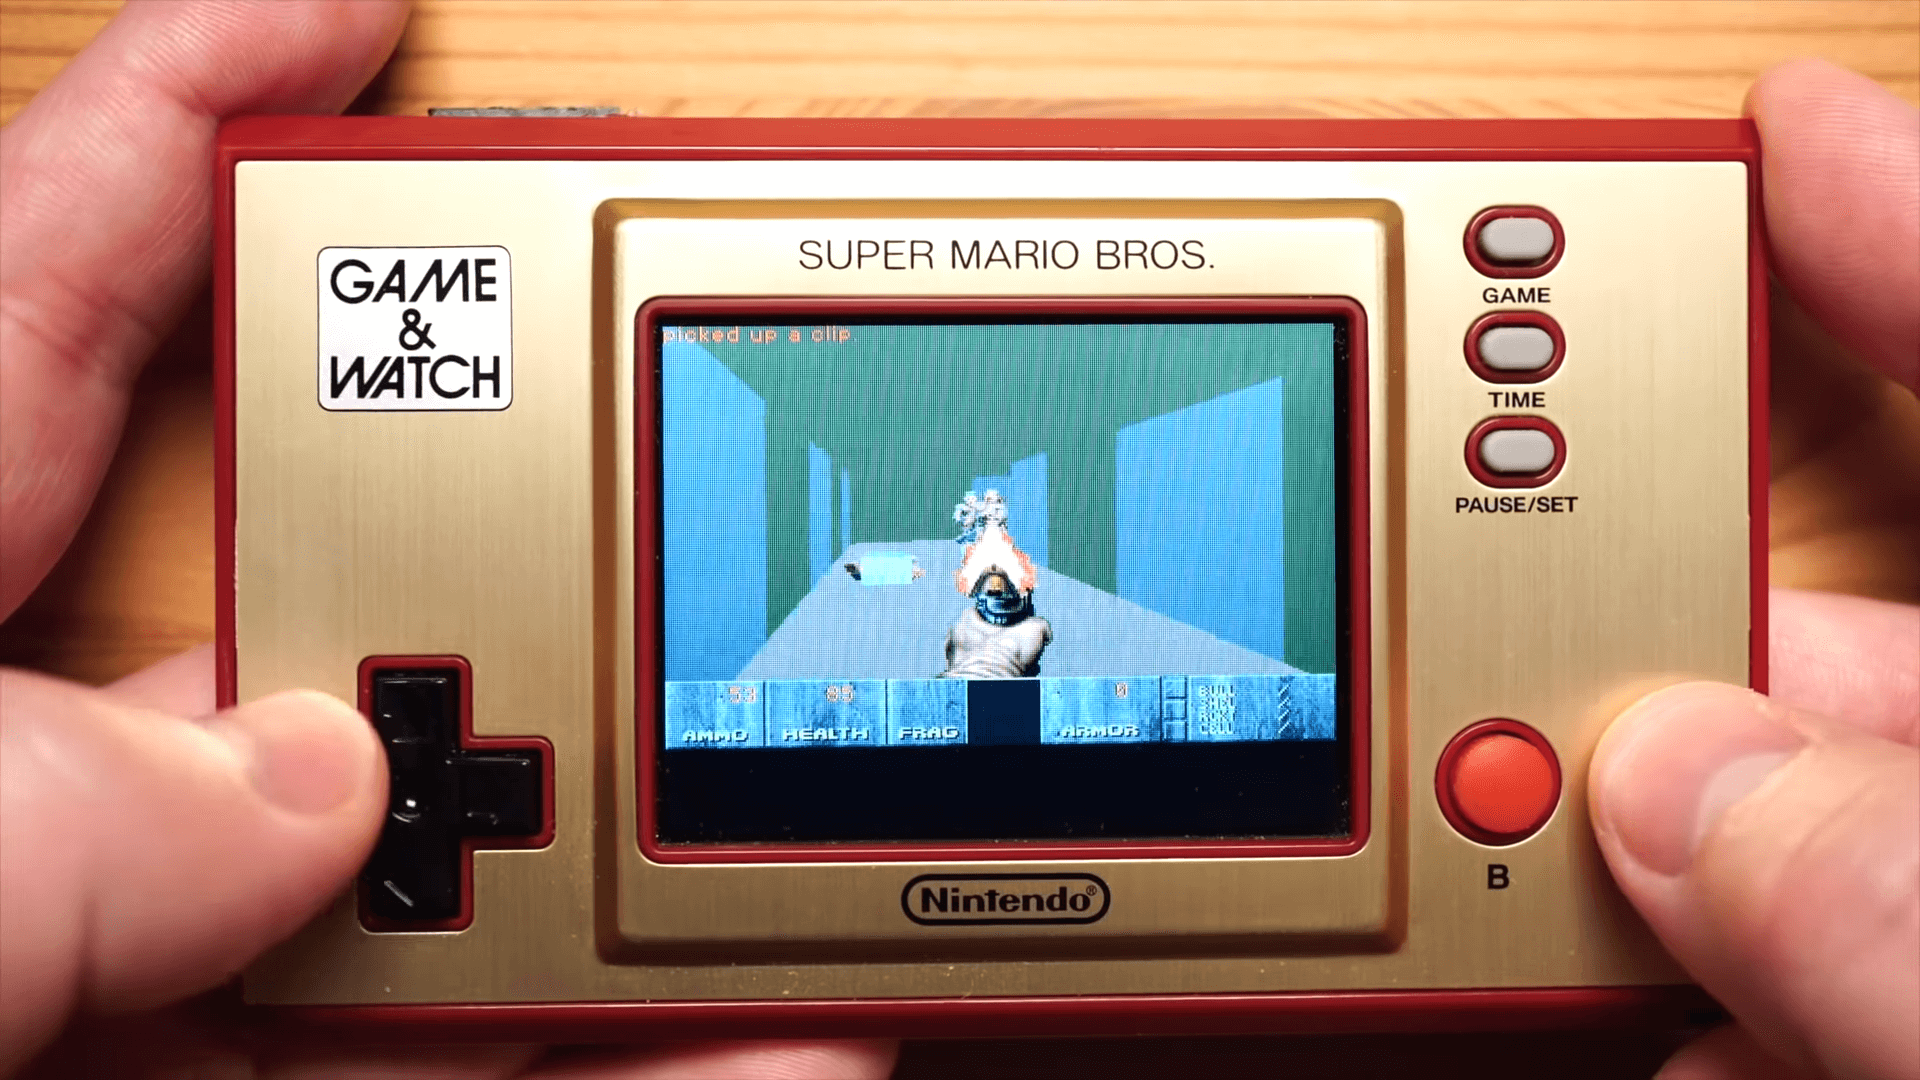 DOOM is Playable on the Super Mario Game & Watch